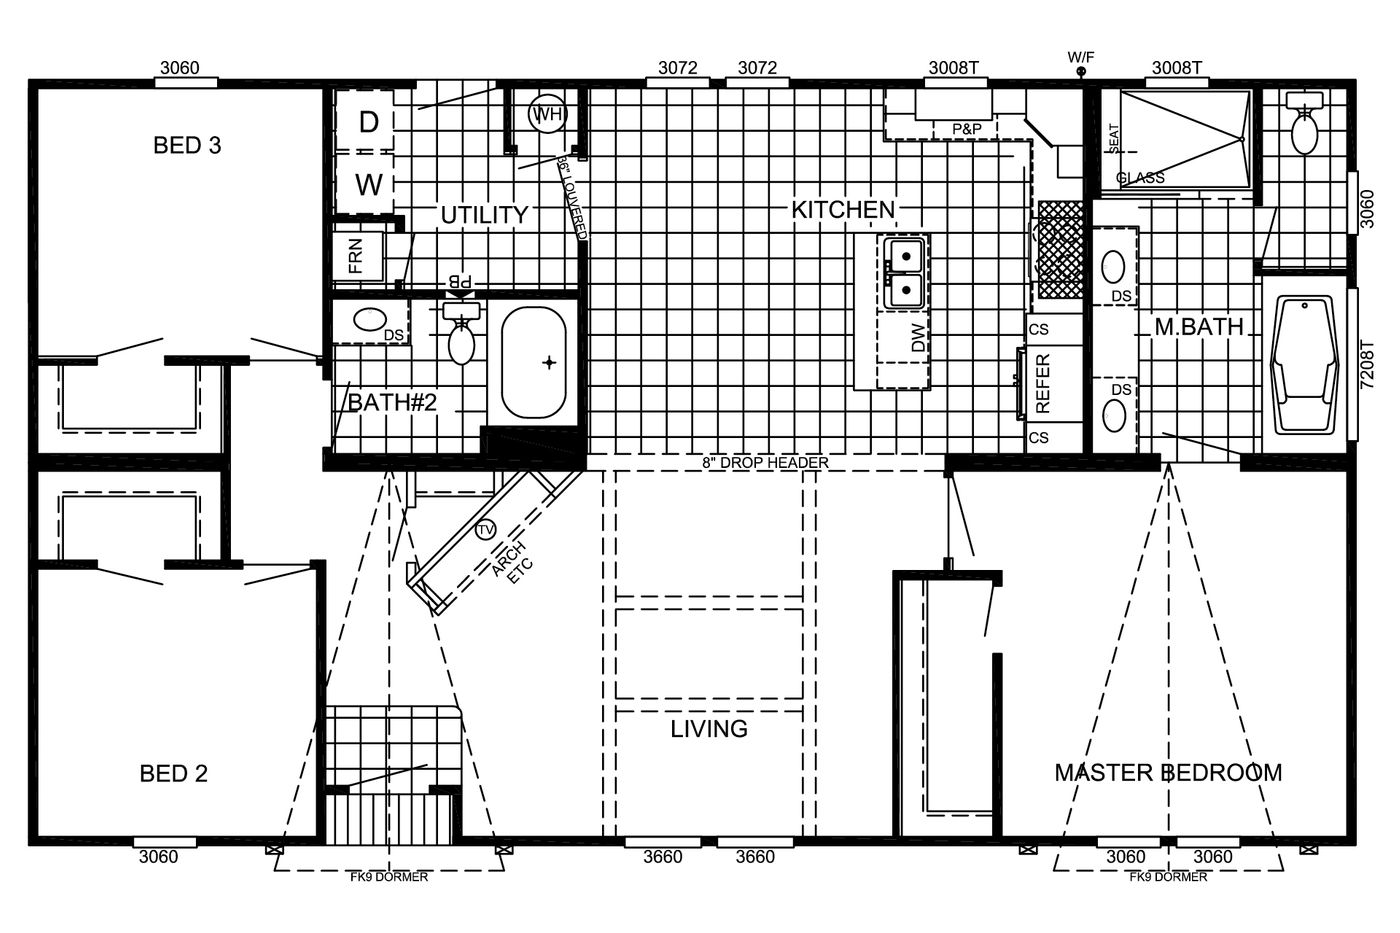 The Floorplan of the Estates Belle Manufactured Home from Timberline Homes of Lafayette, LA